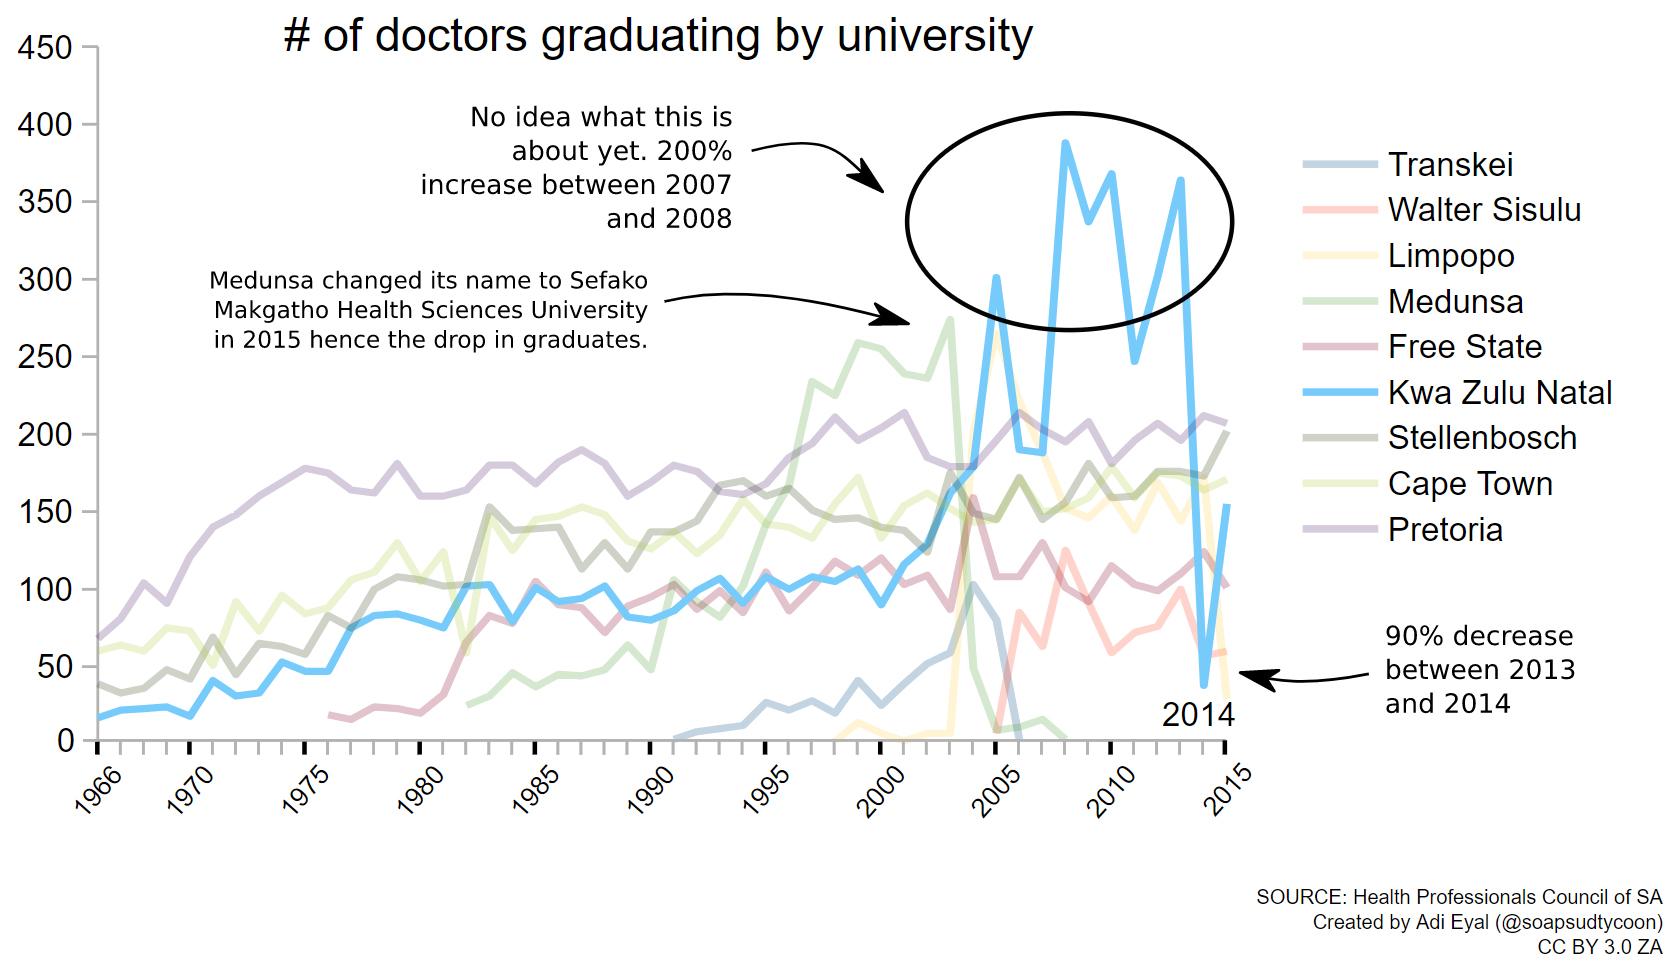 Chart showing the number of doctors graduating